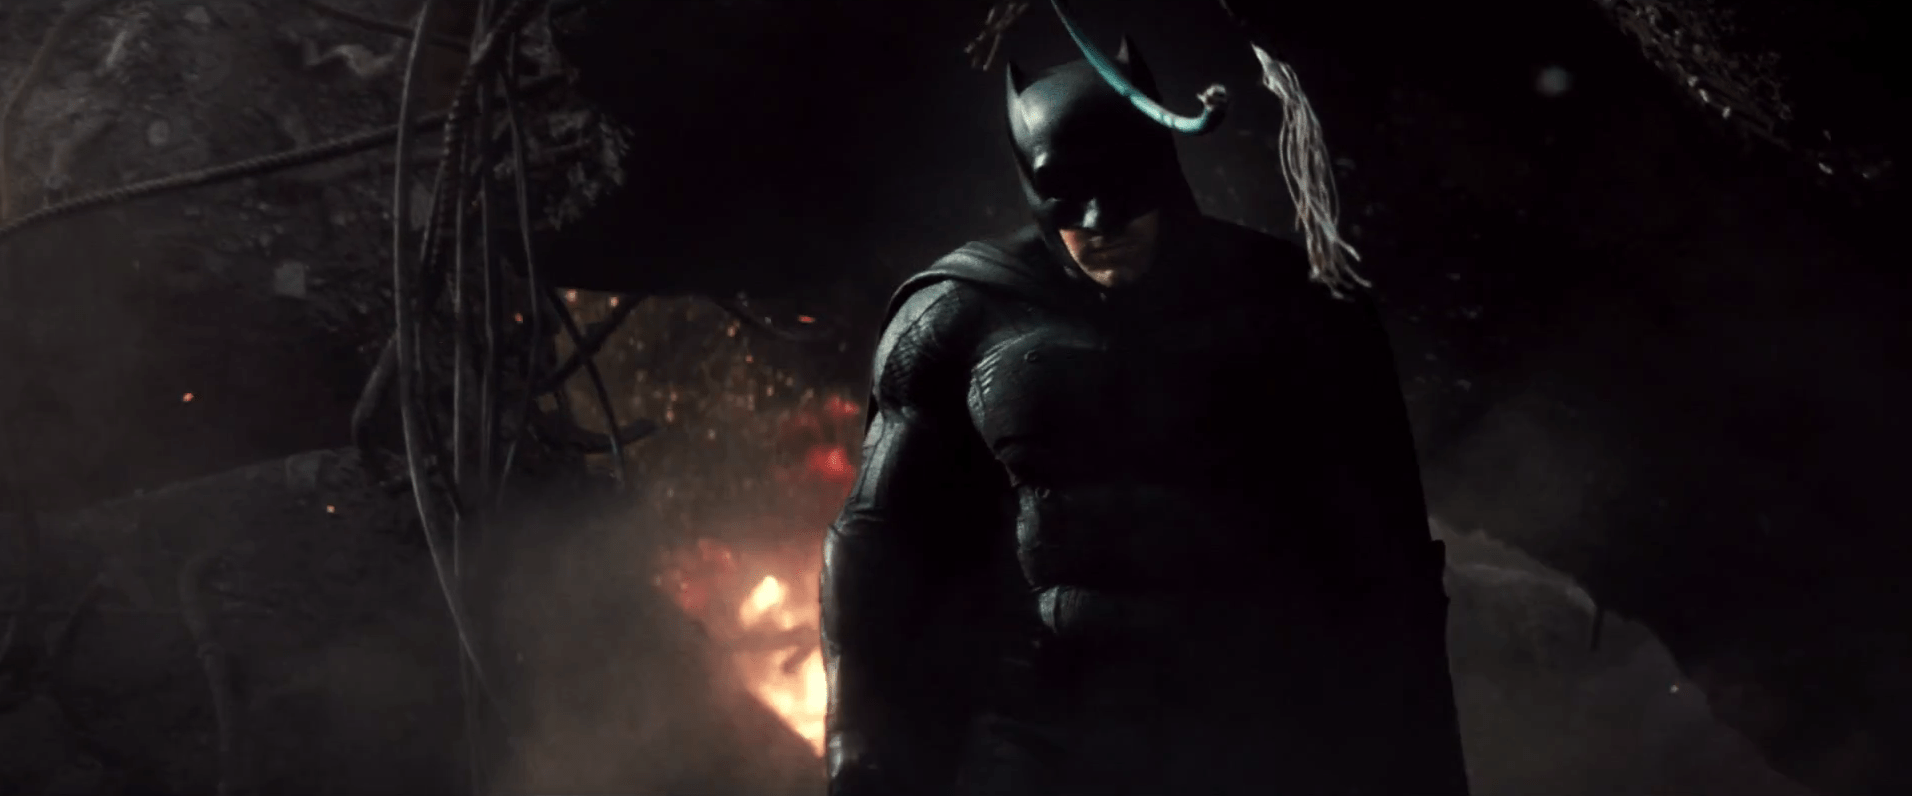 10 Things to Note in the First Trailer for Batman v Superman: Dawn of Justice